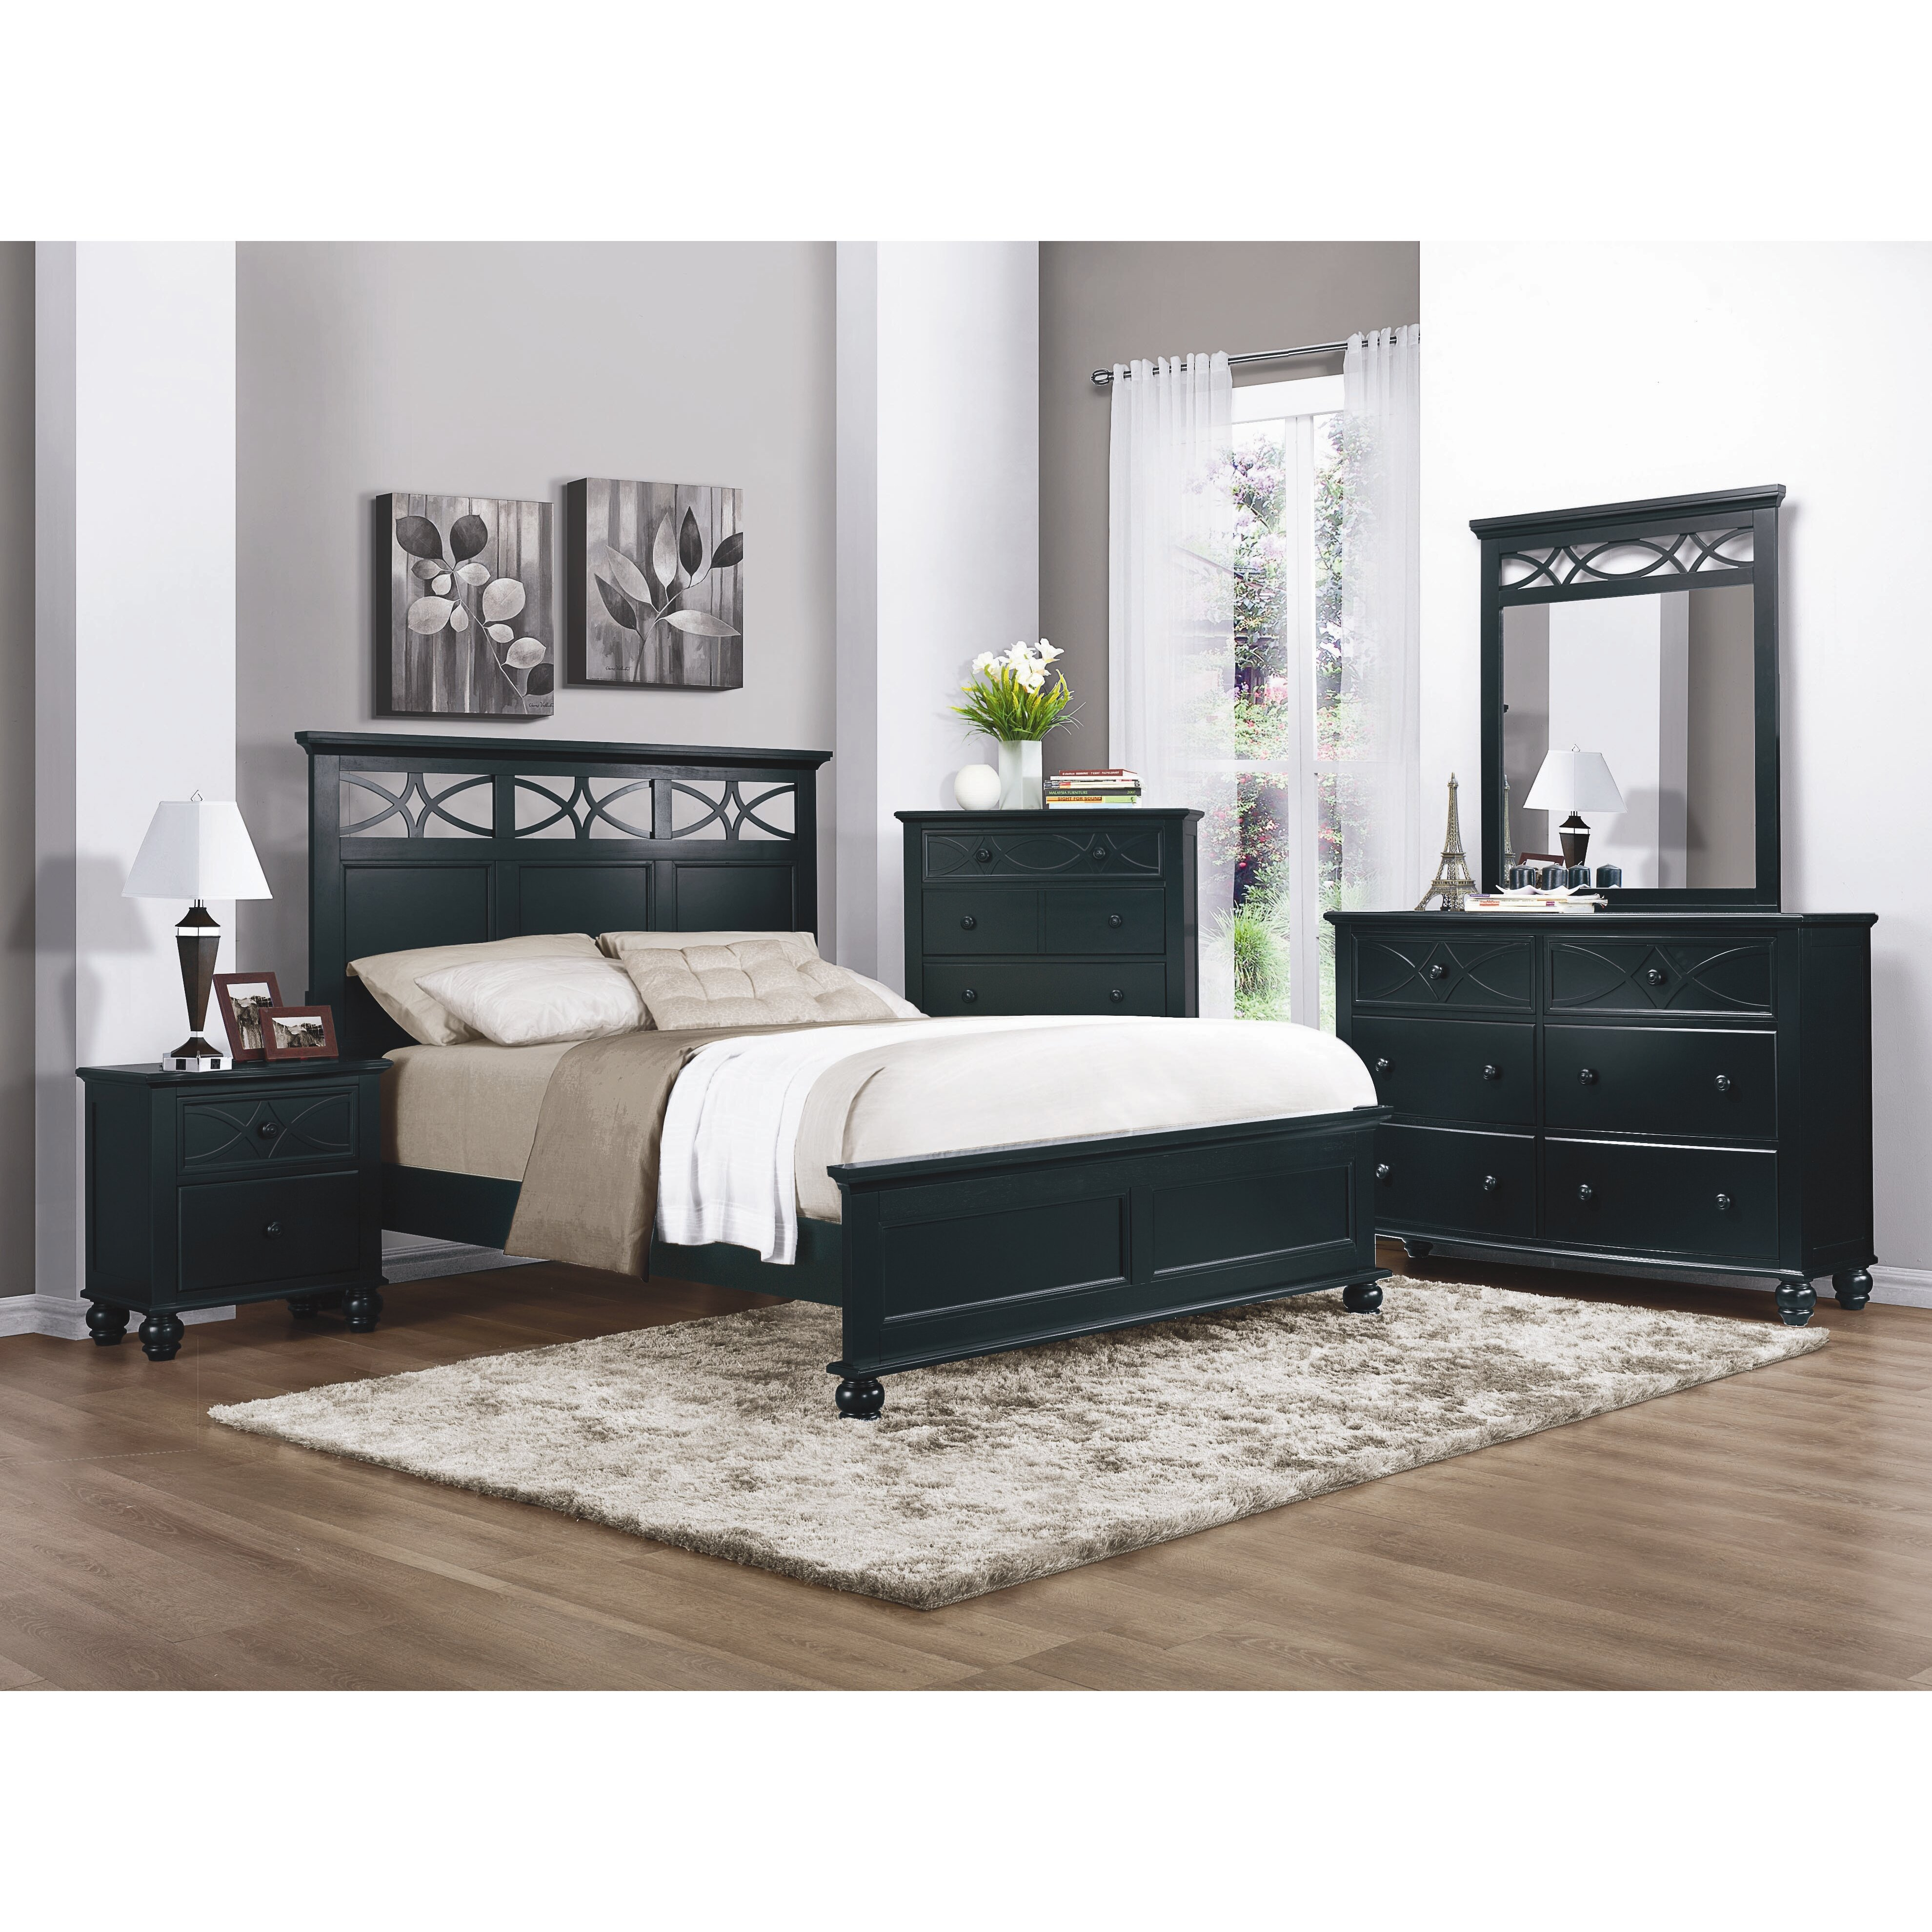 Shaker Bedroom Furniture Sets Shaker Bedroom Sets Shaker Bedroom Sets Cresent Fine Furniture